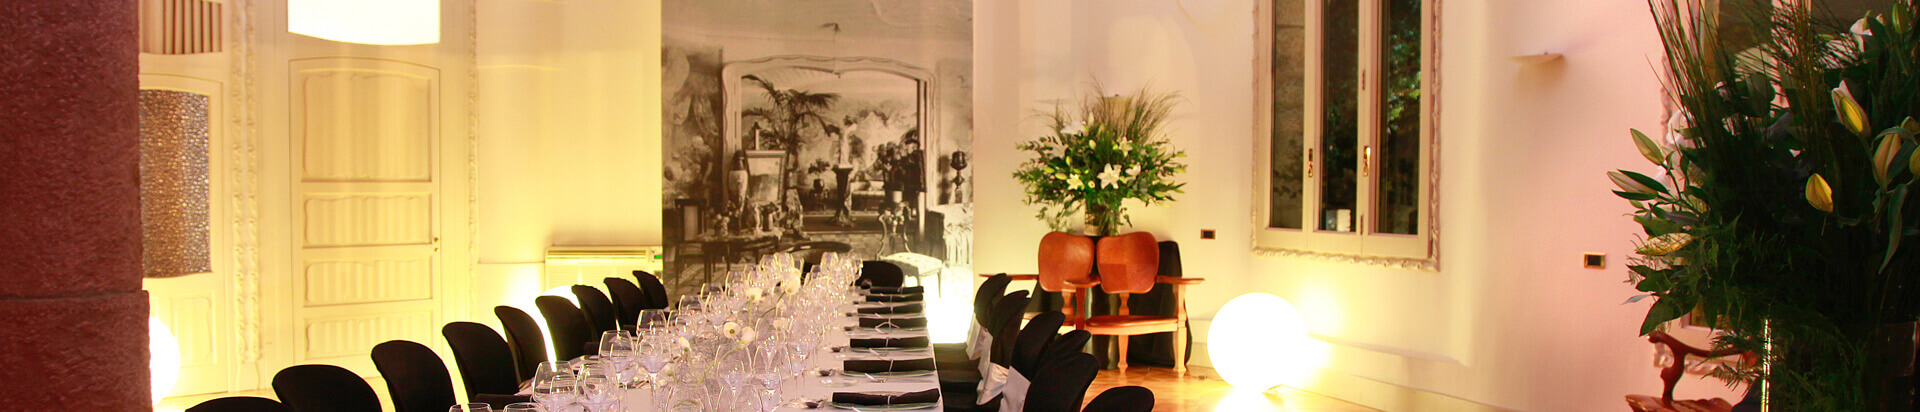 rooms pedrera events barcelona